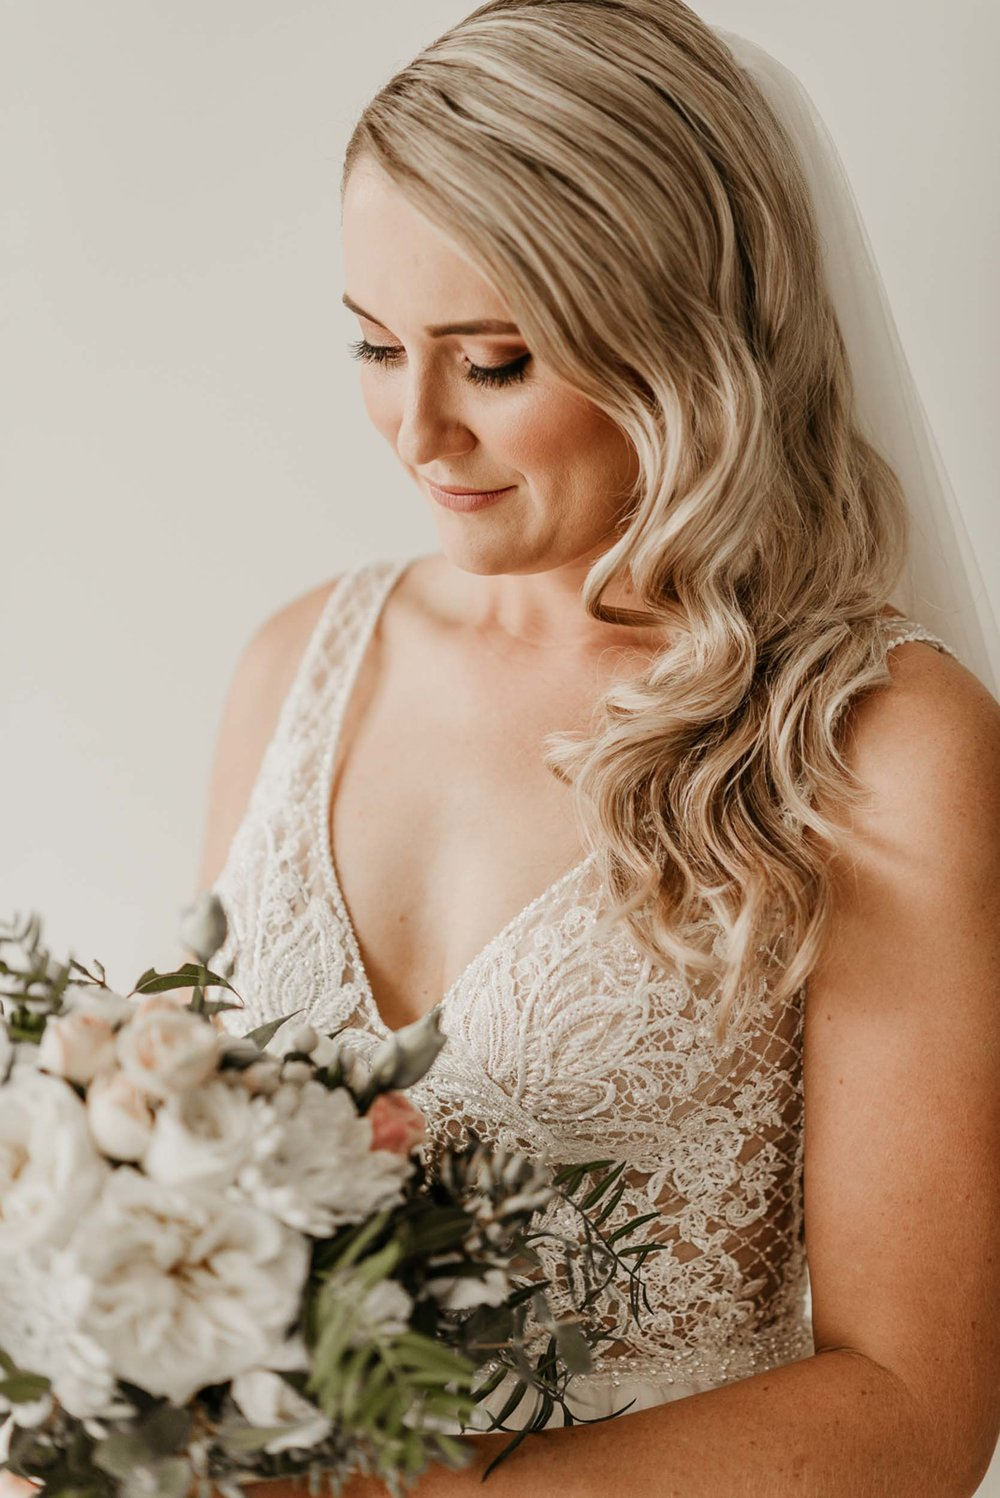 The Raw Photographer - Townsville Wedding Photographer - Magnetic Island - Destination Wedding - Dress White Lily Couture Bridal Nicole Milano-15.jpg